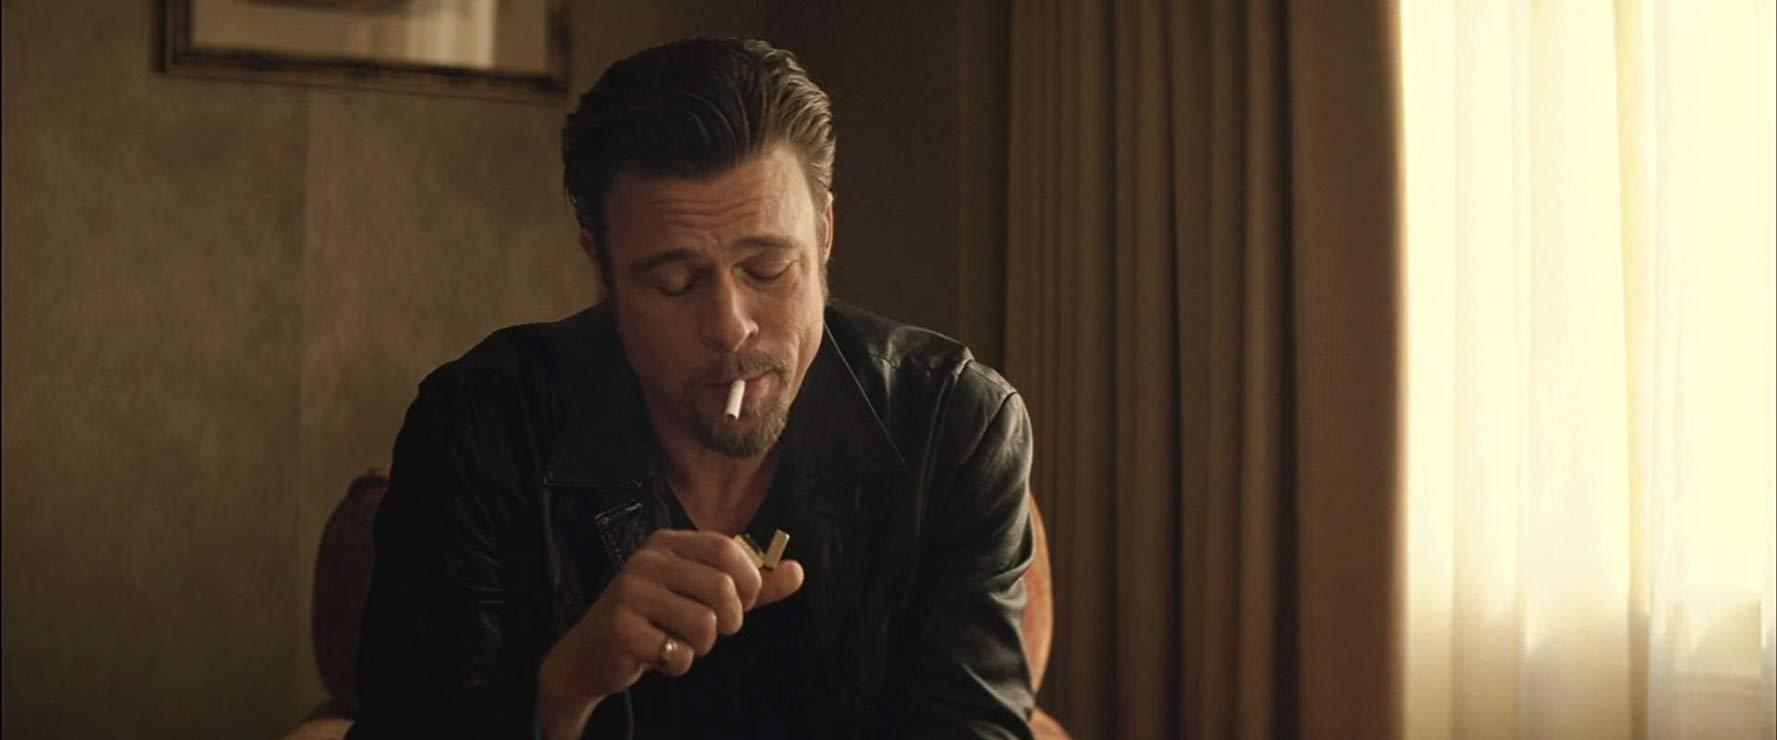 مشاهدة فيلم Killing Them Softly (2012) مترجم HD اون لاين